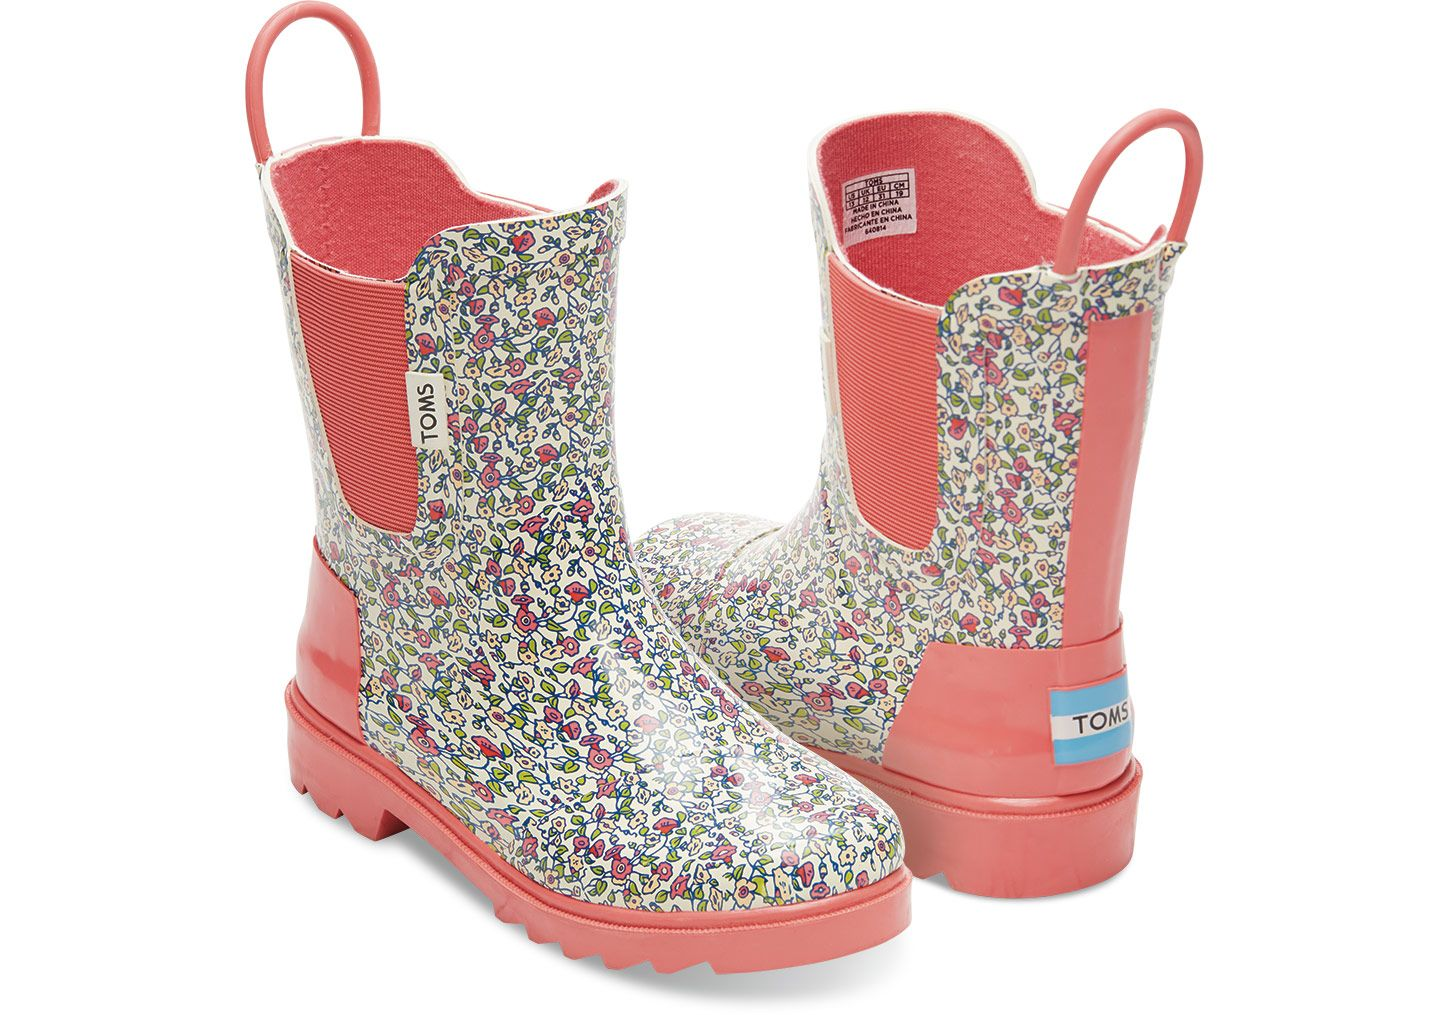 Pink Rubber Ditsy Tiny Toms Rain Boots Toms Boots Kid Shoes Rain Boots